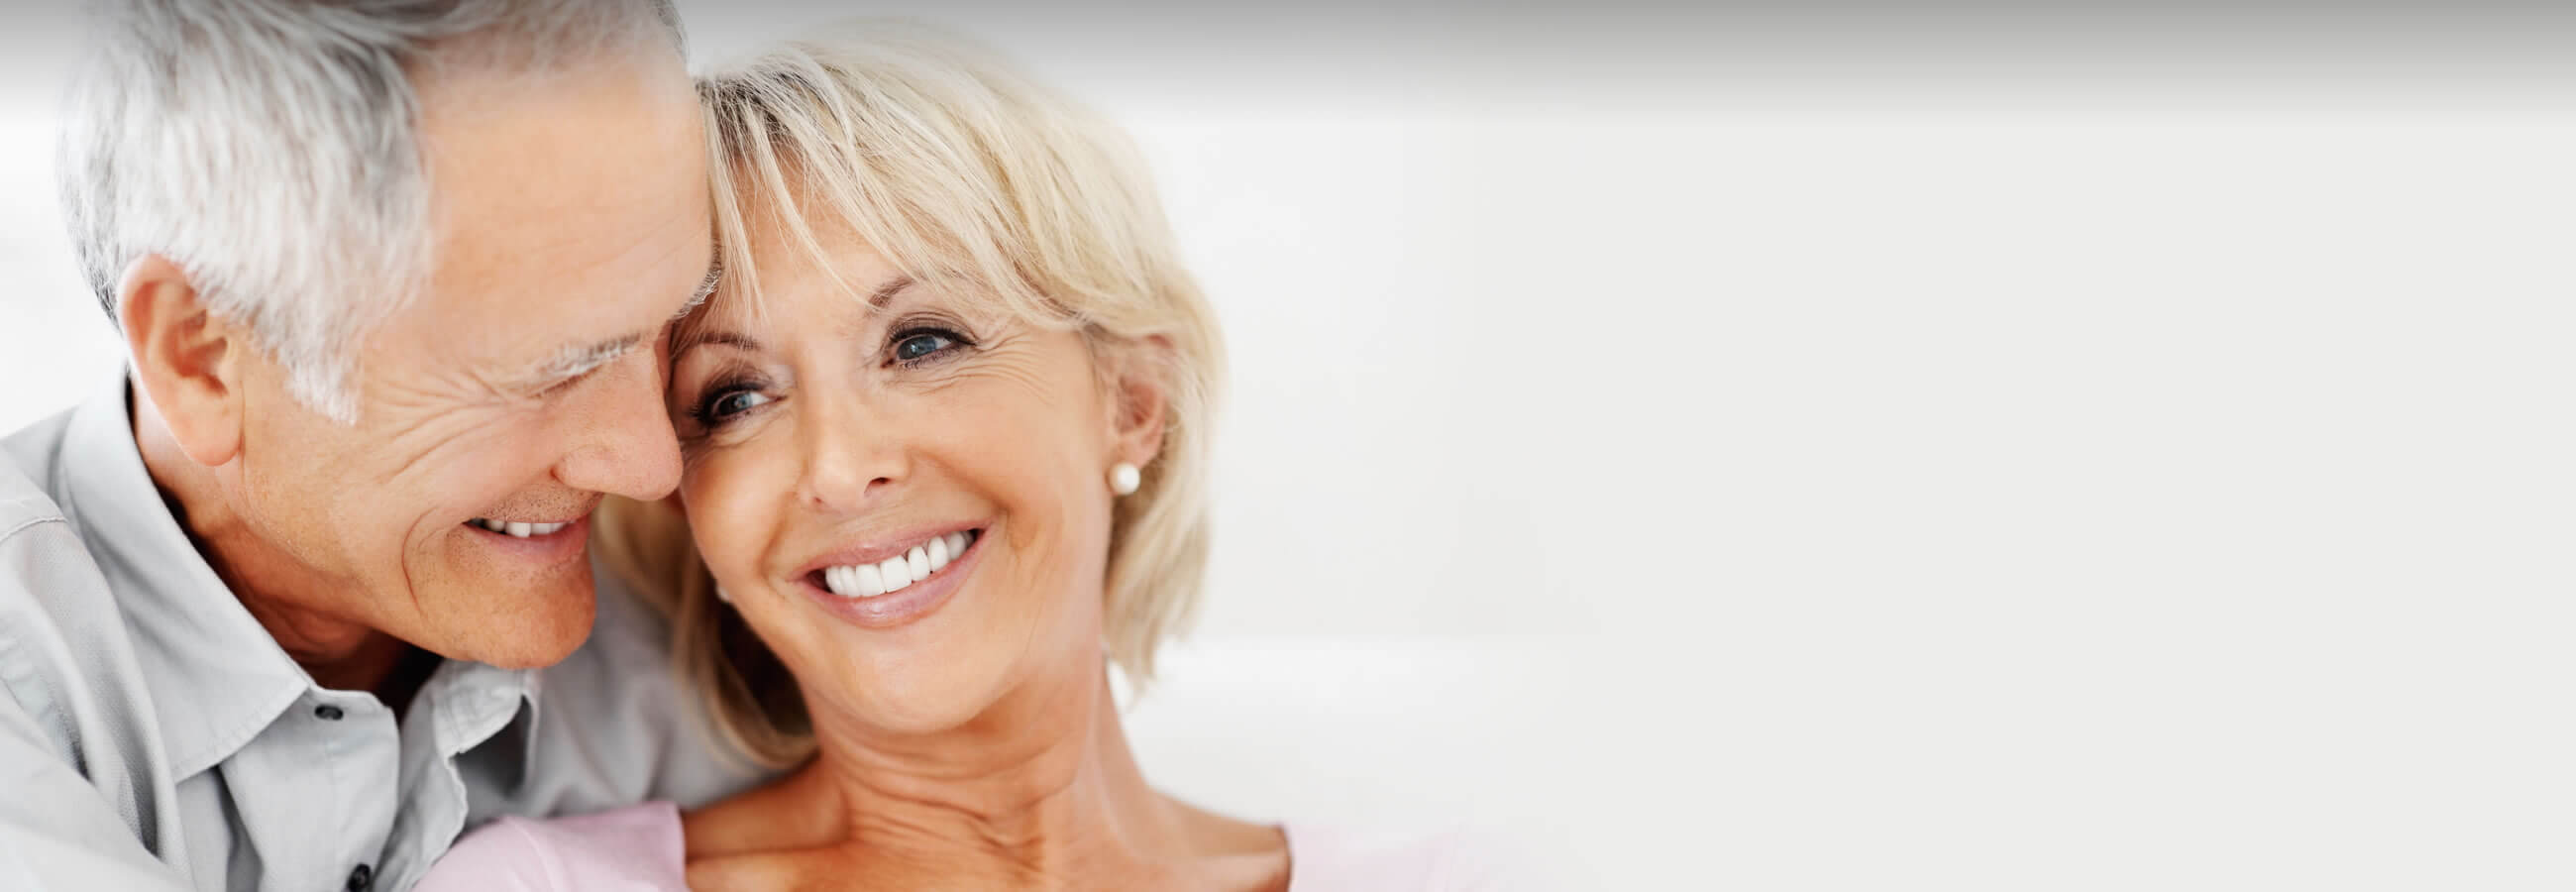 Dentures at Premier Dental Care in Bloxwich, Walsall